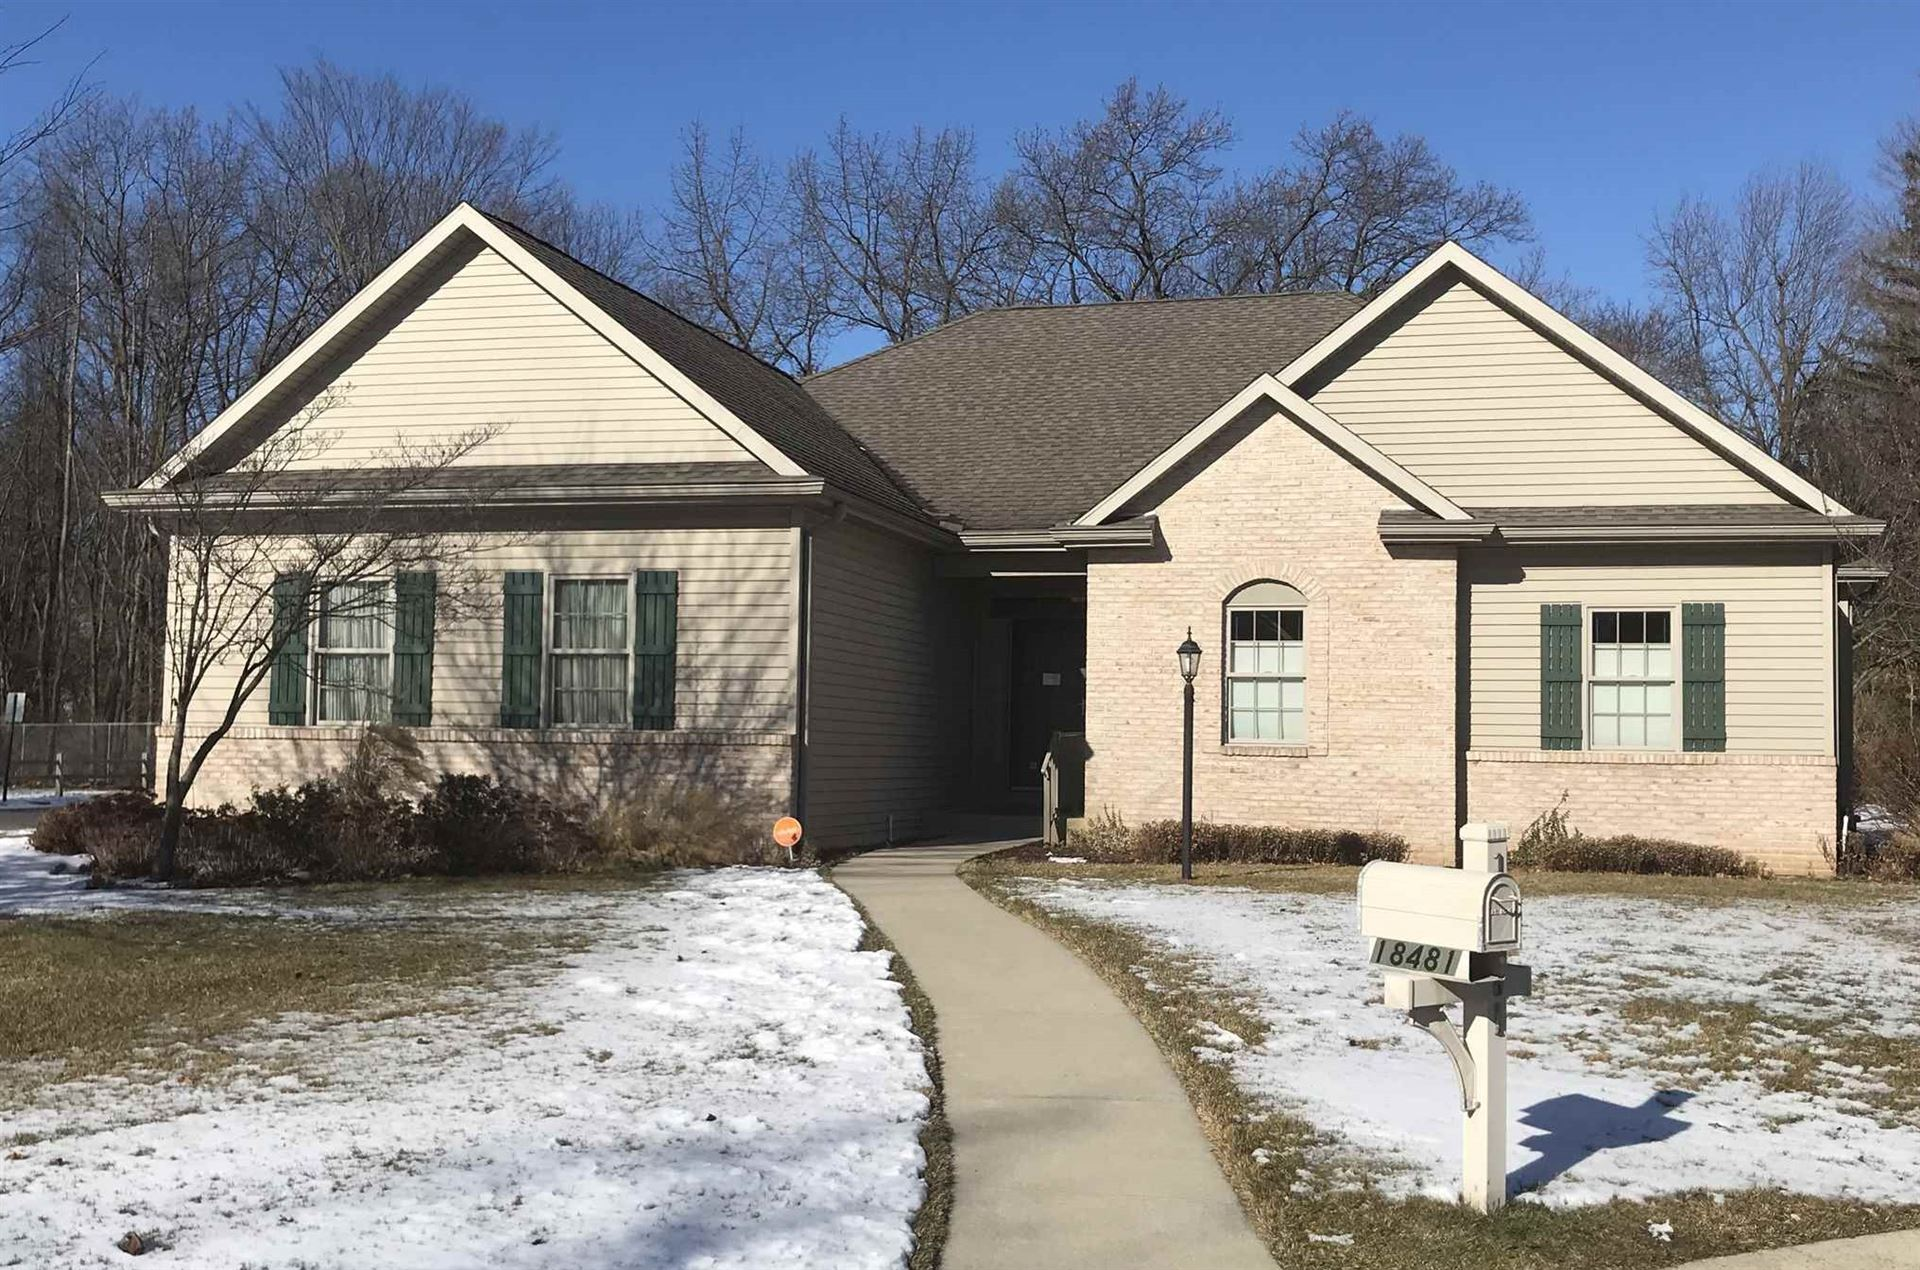 18481 Spring Mist Court, South Bend, IN 46637 - #: 202047923